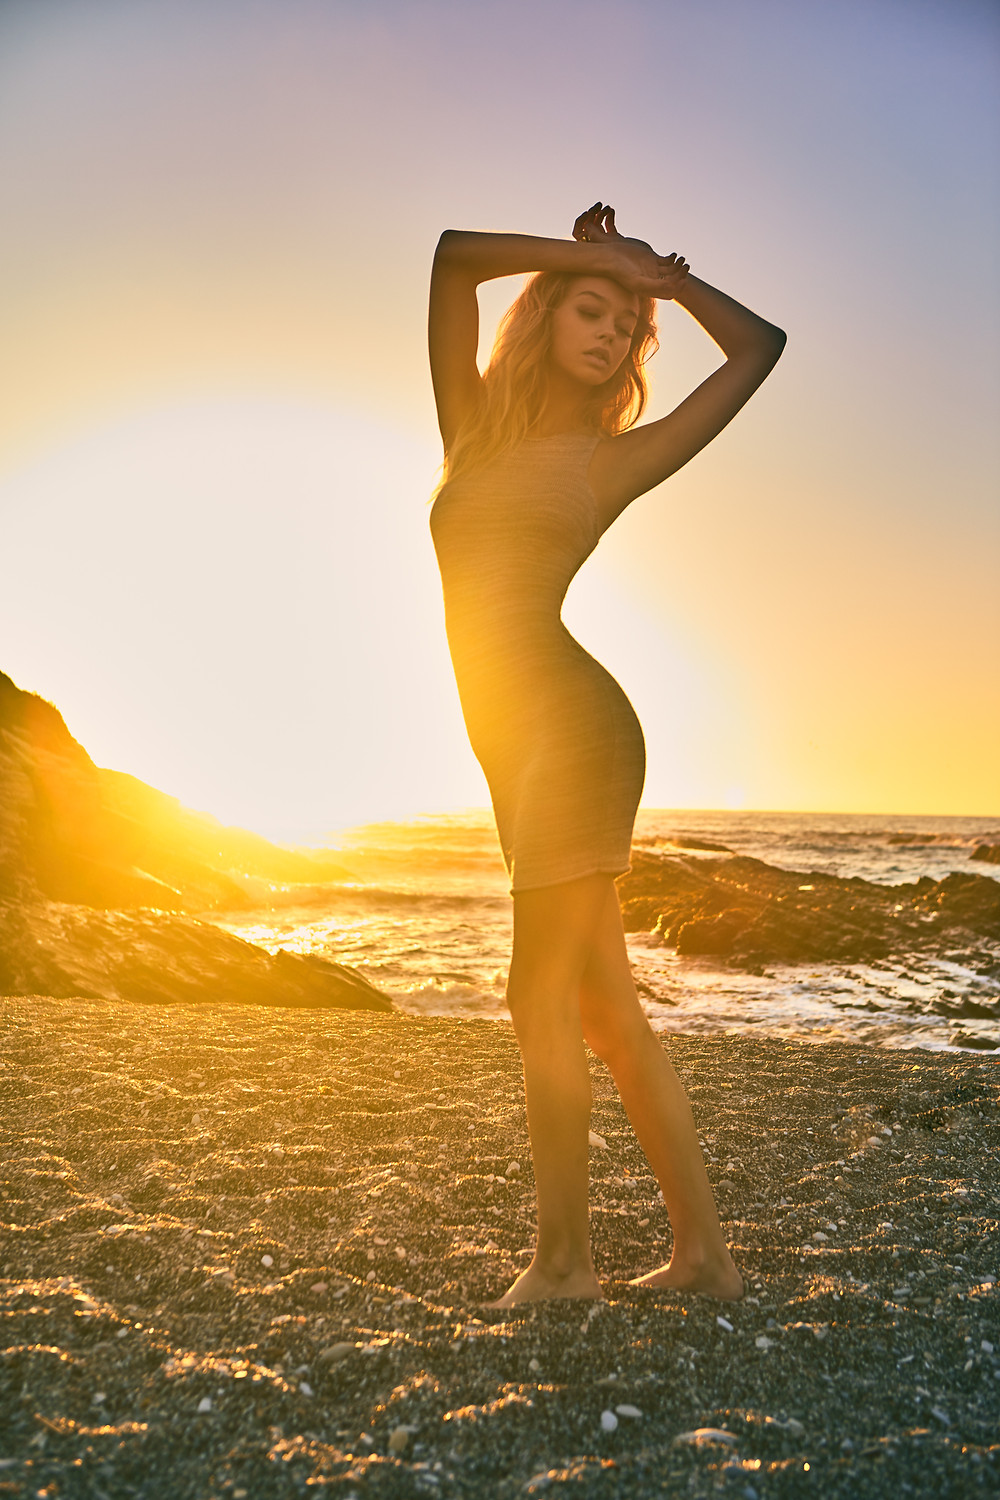 Model Julia Greenhalgh on the beach at sunset wearing a sheer and sexy dress by Amuse Society with photography by Patrick Patton